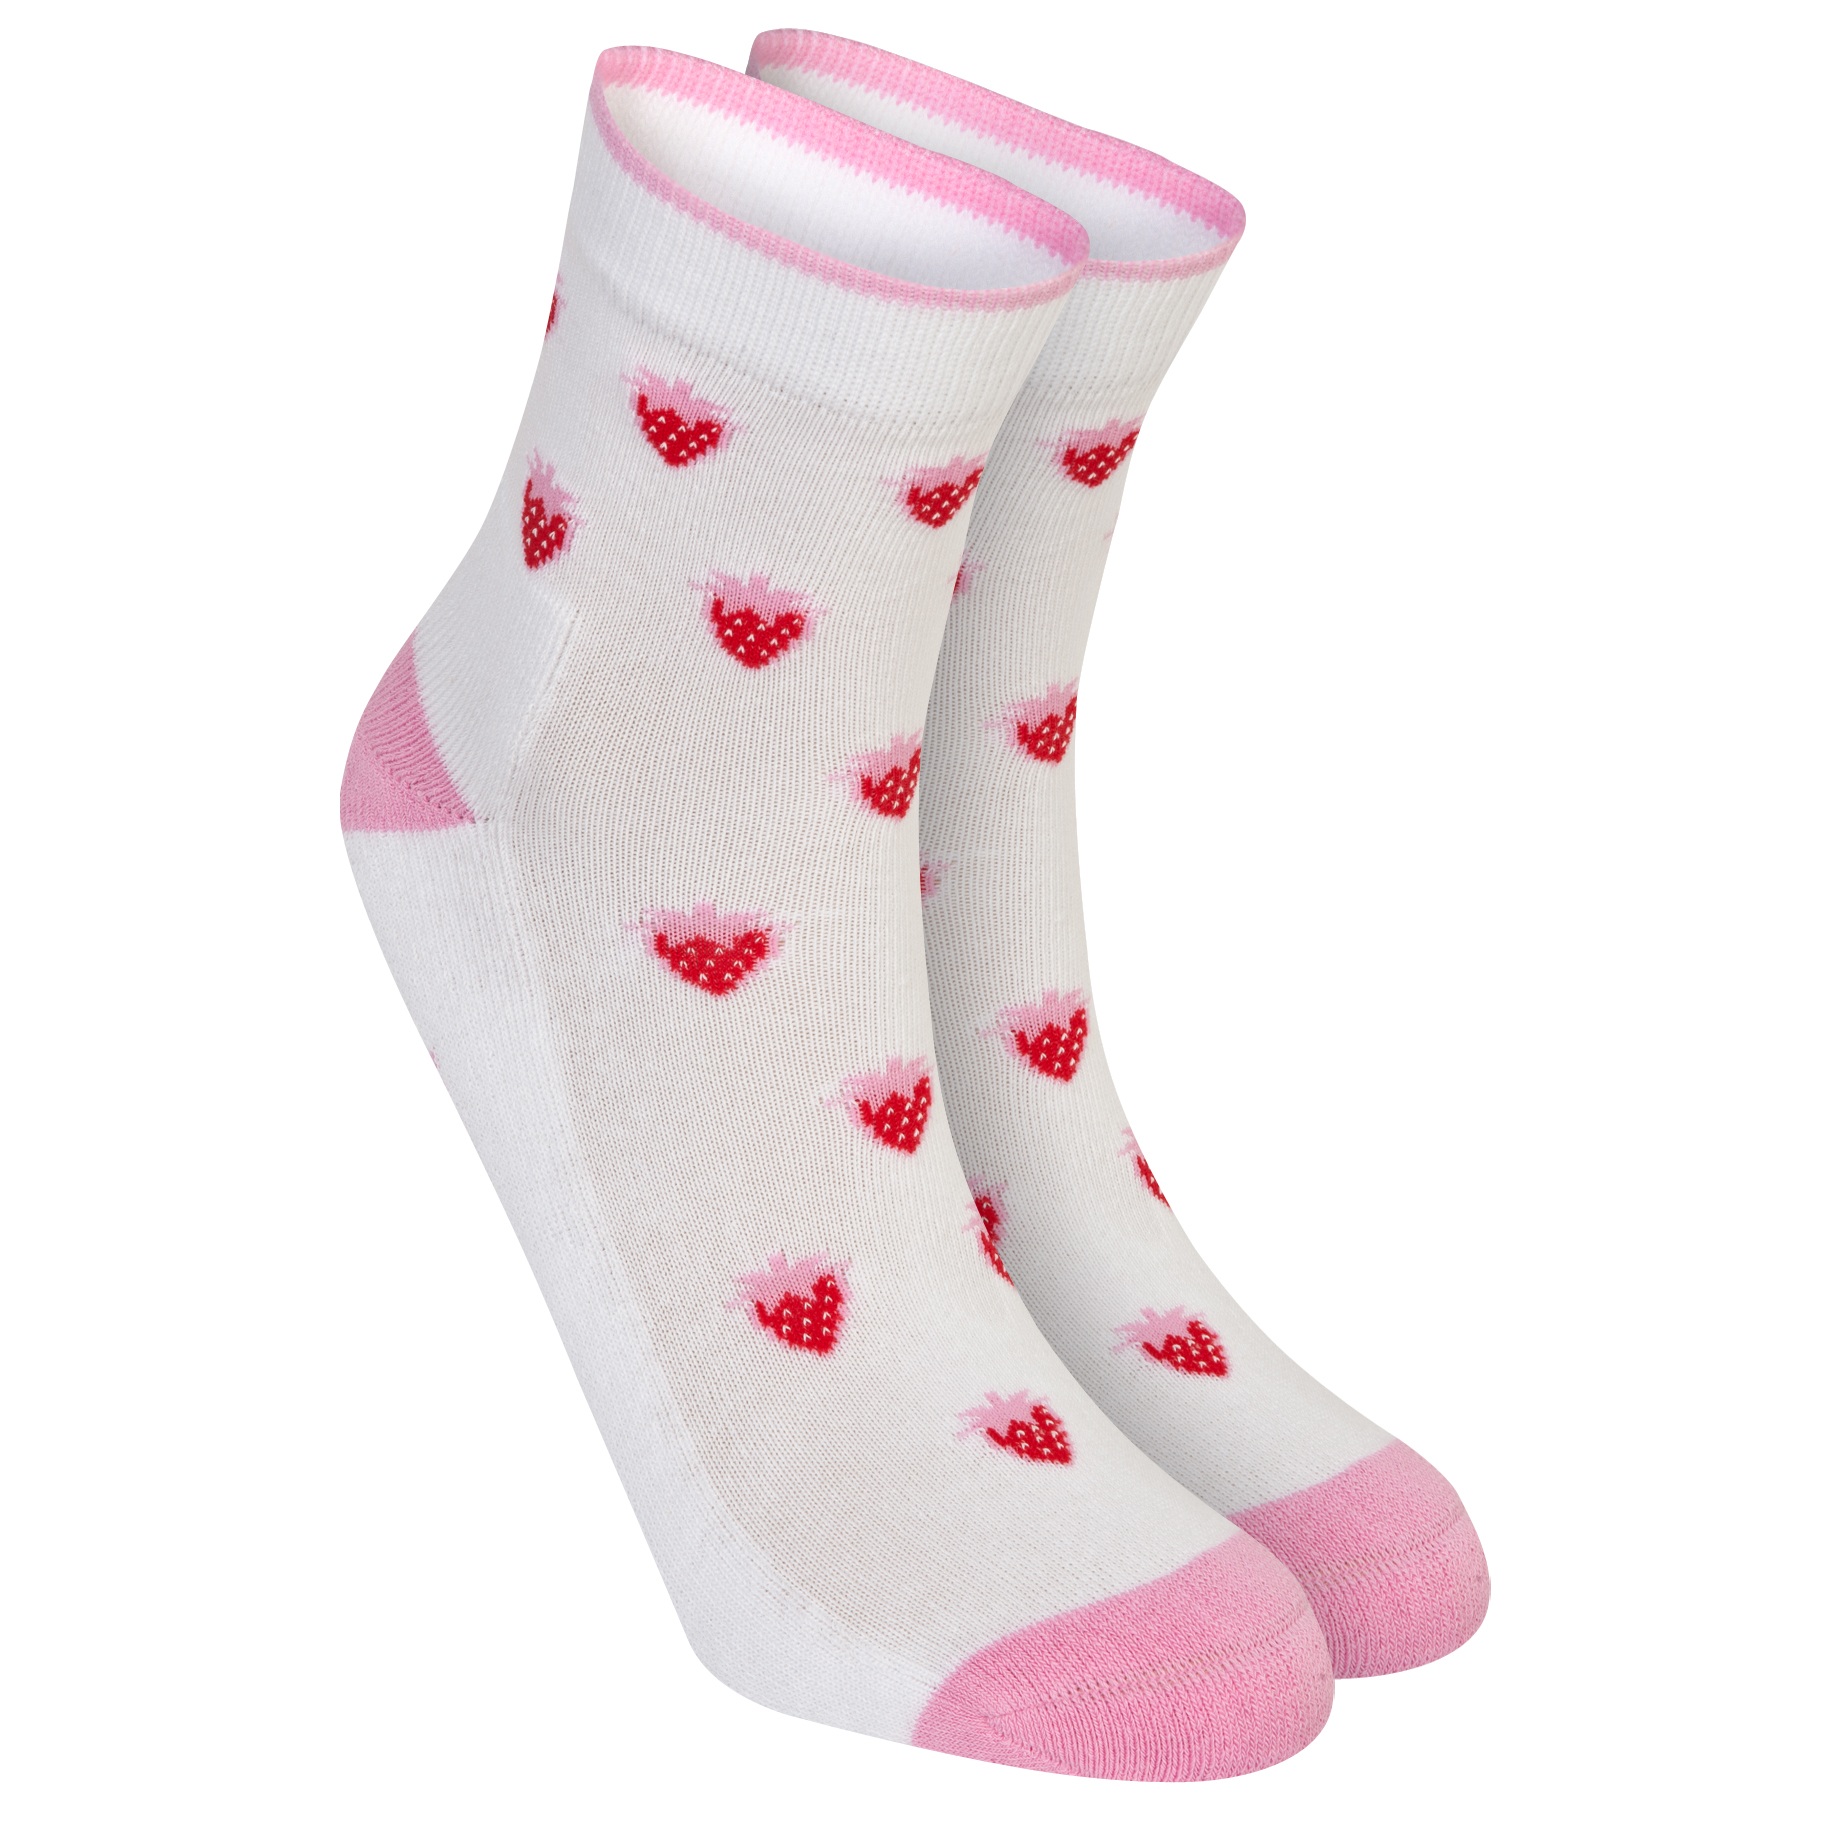 Wimbledon Trainer Socks - Kids White